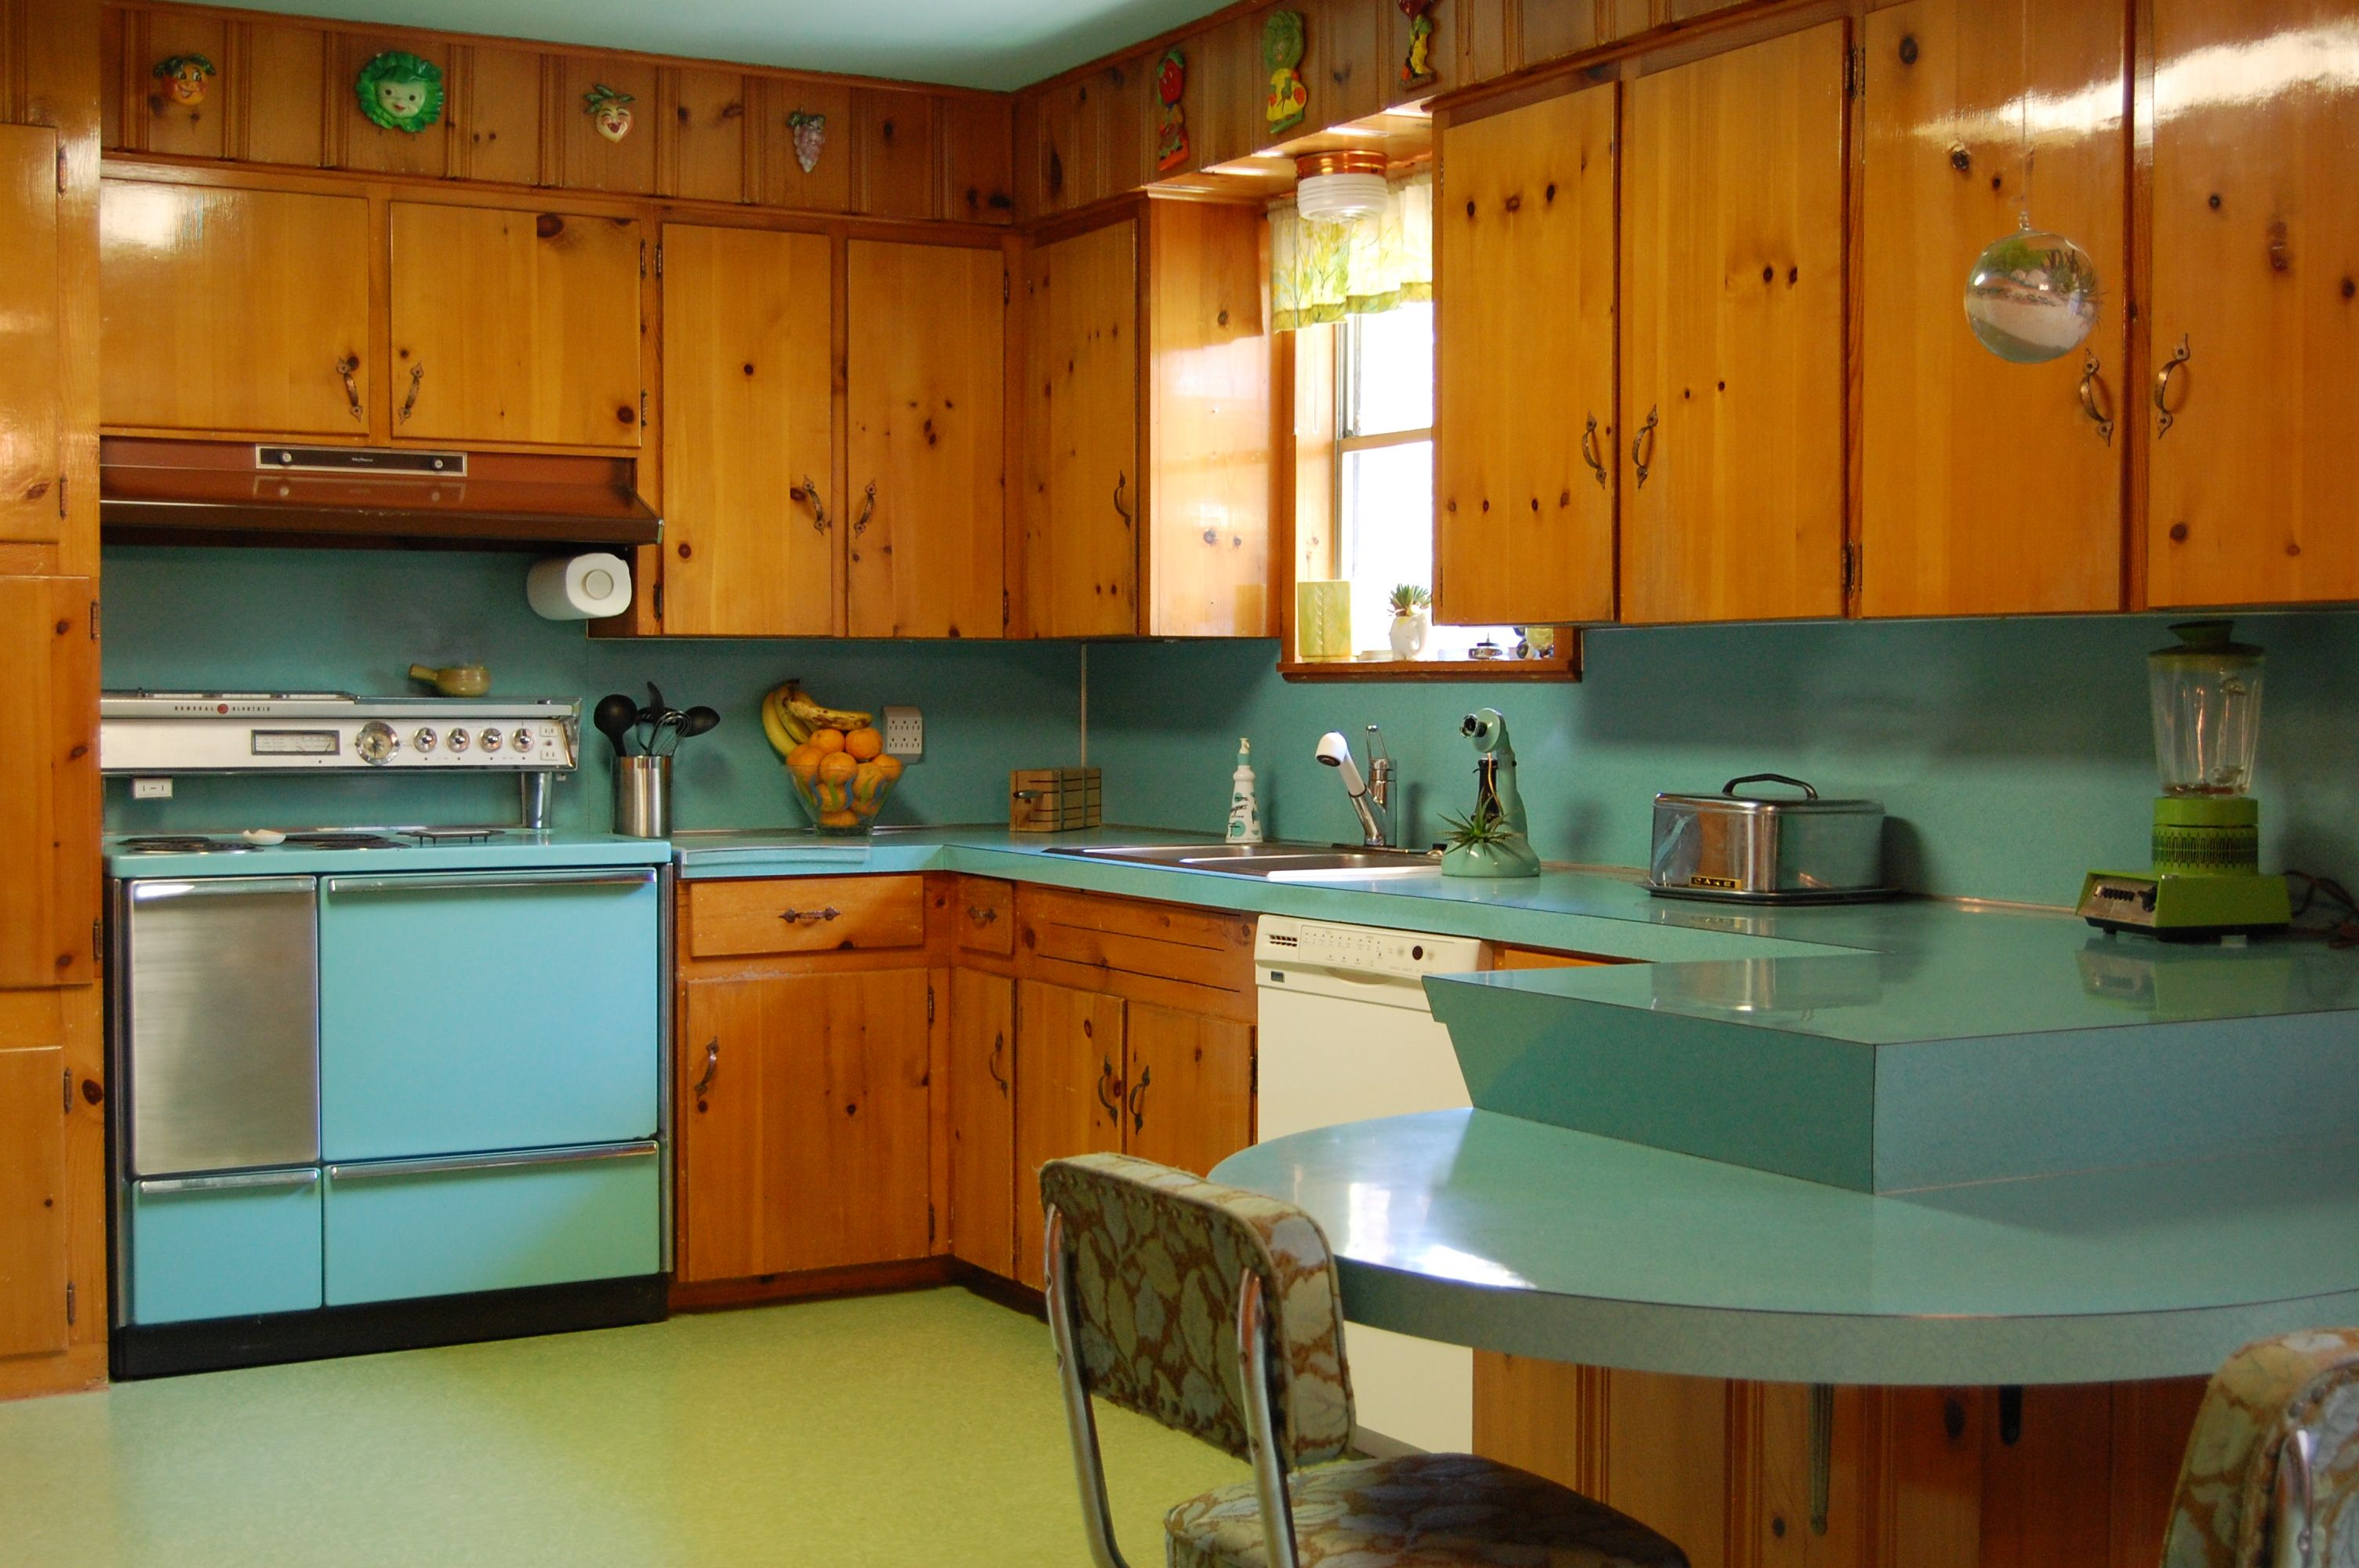 Best Kitchen Gallery: I Love This Renovated Turquoise Retro Kitchen Turquoise of Knotty Pine Kitchen Decor on rachelxblog.com